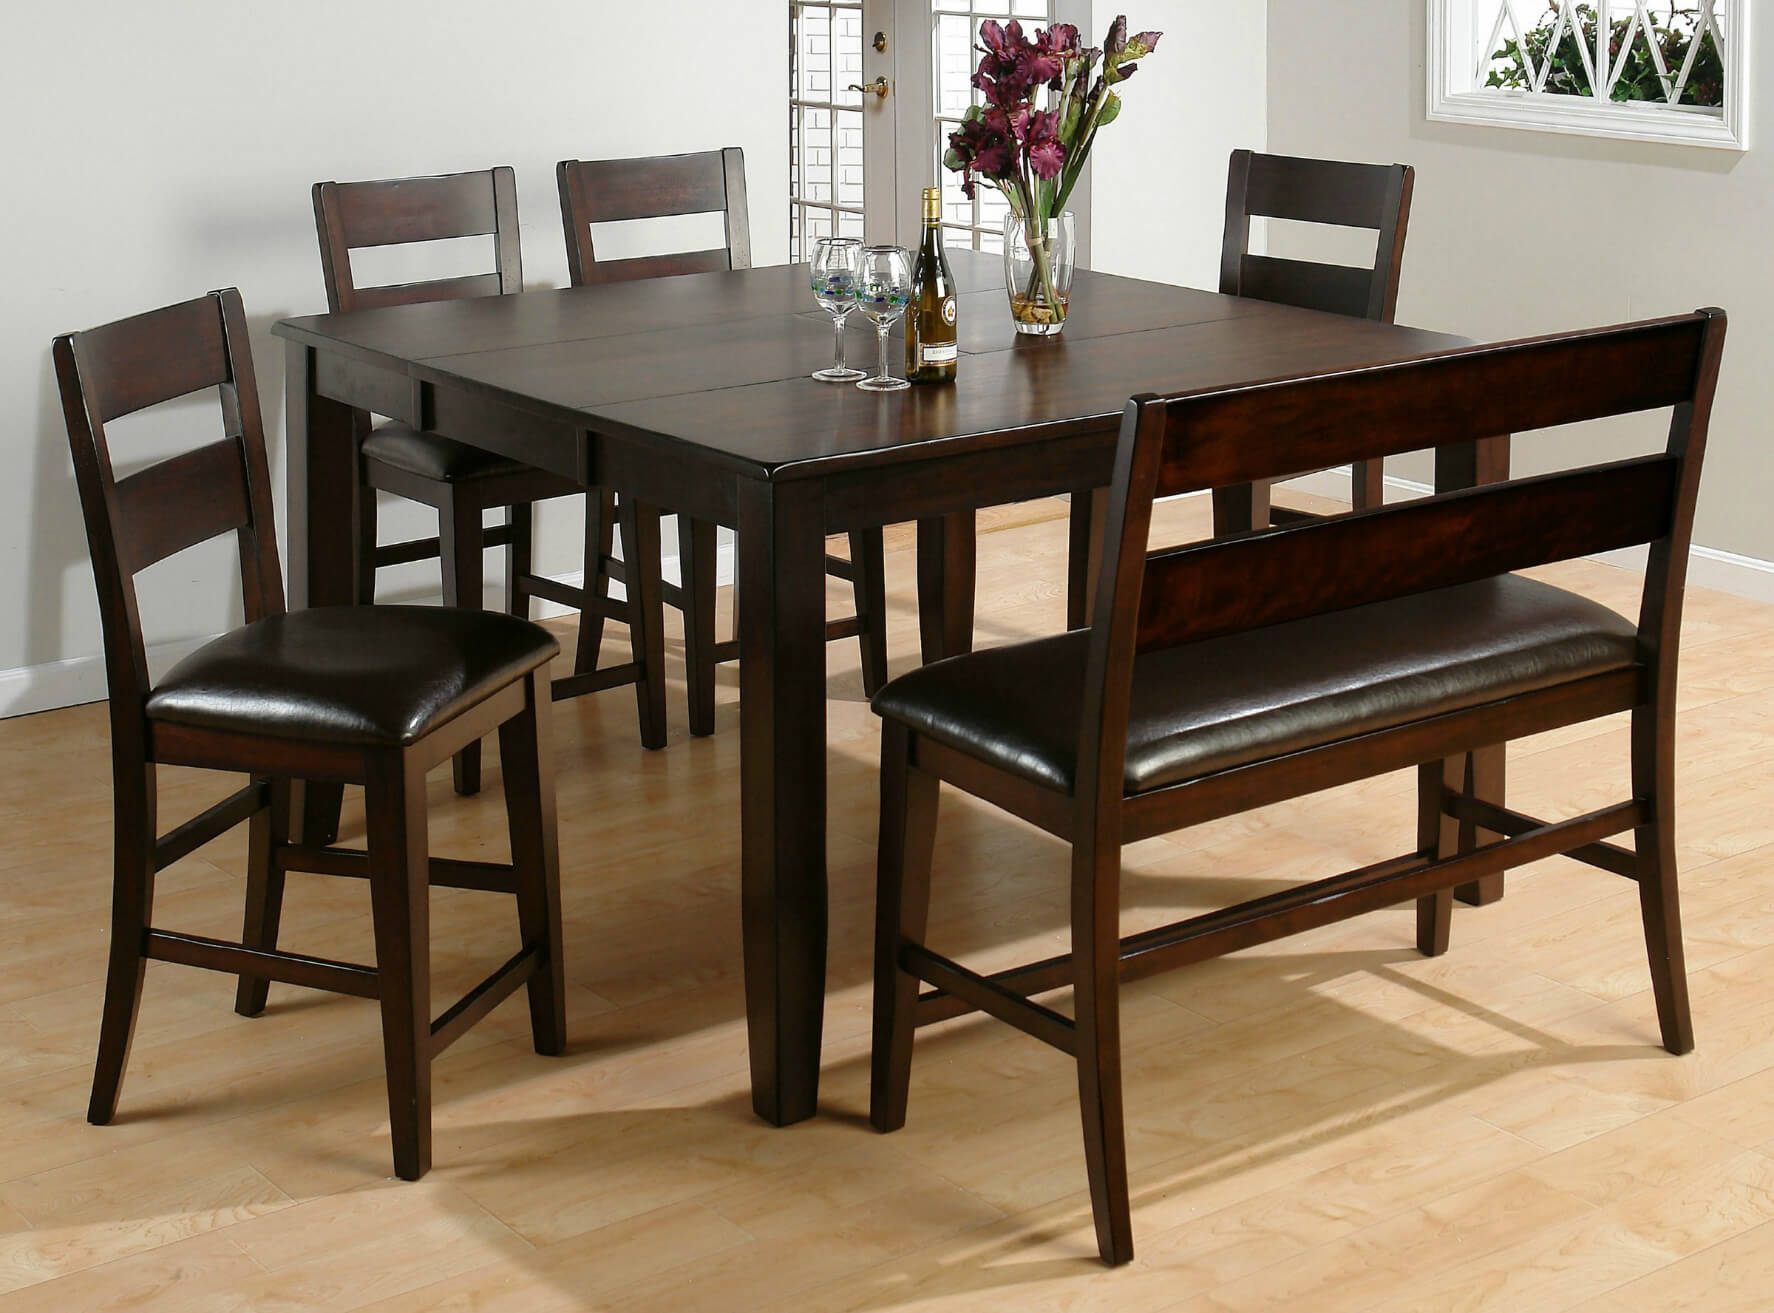 dining room sets bench seating small kitchen table set Here s a counter height square dining room table with bench Moreover the bench includes